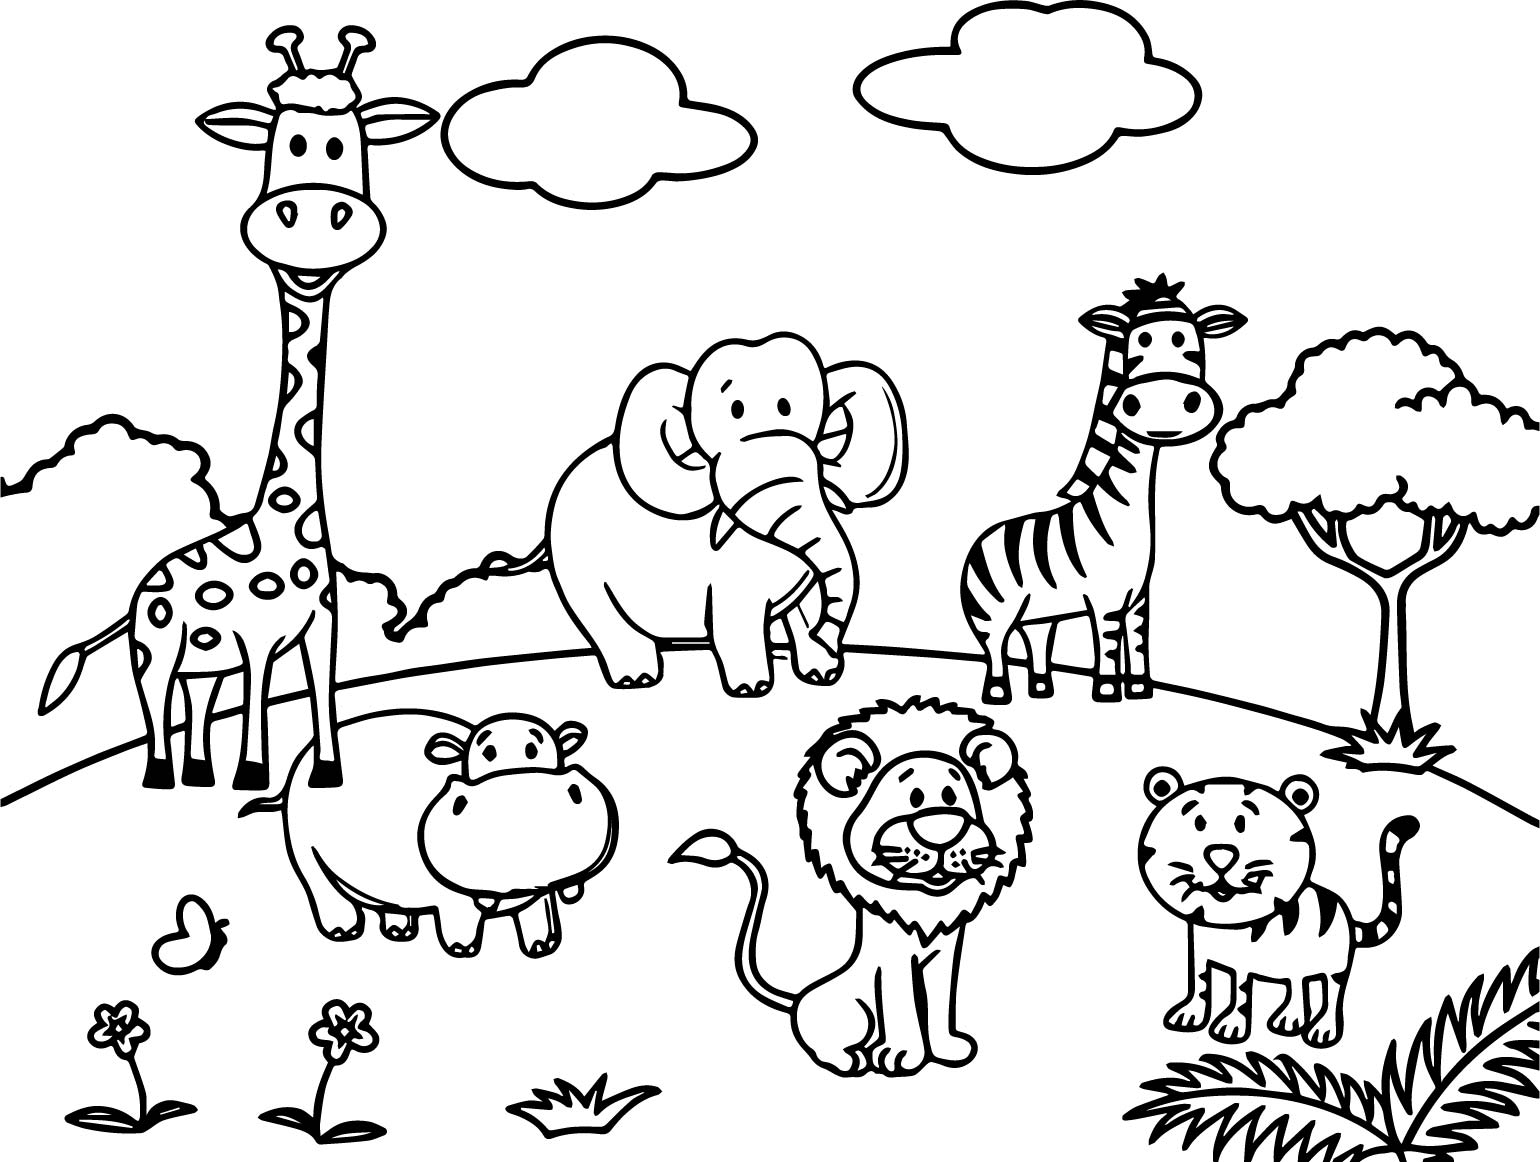 animal coloring page adult coloring pages animals best coloring pages for kids page coloring animal